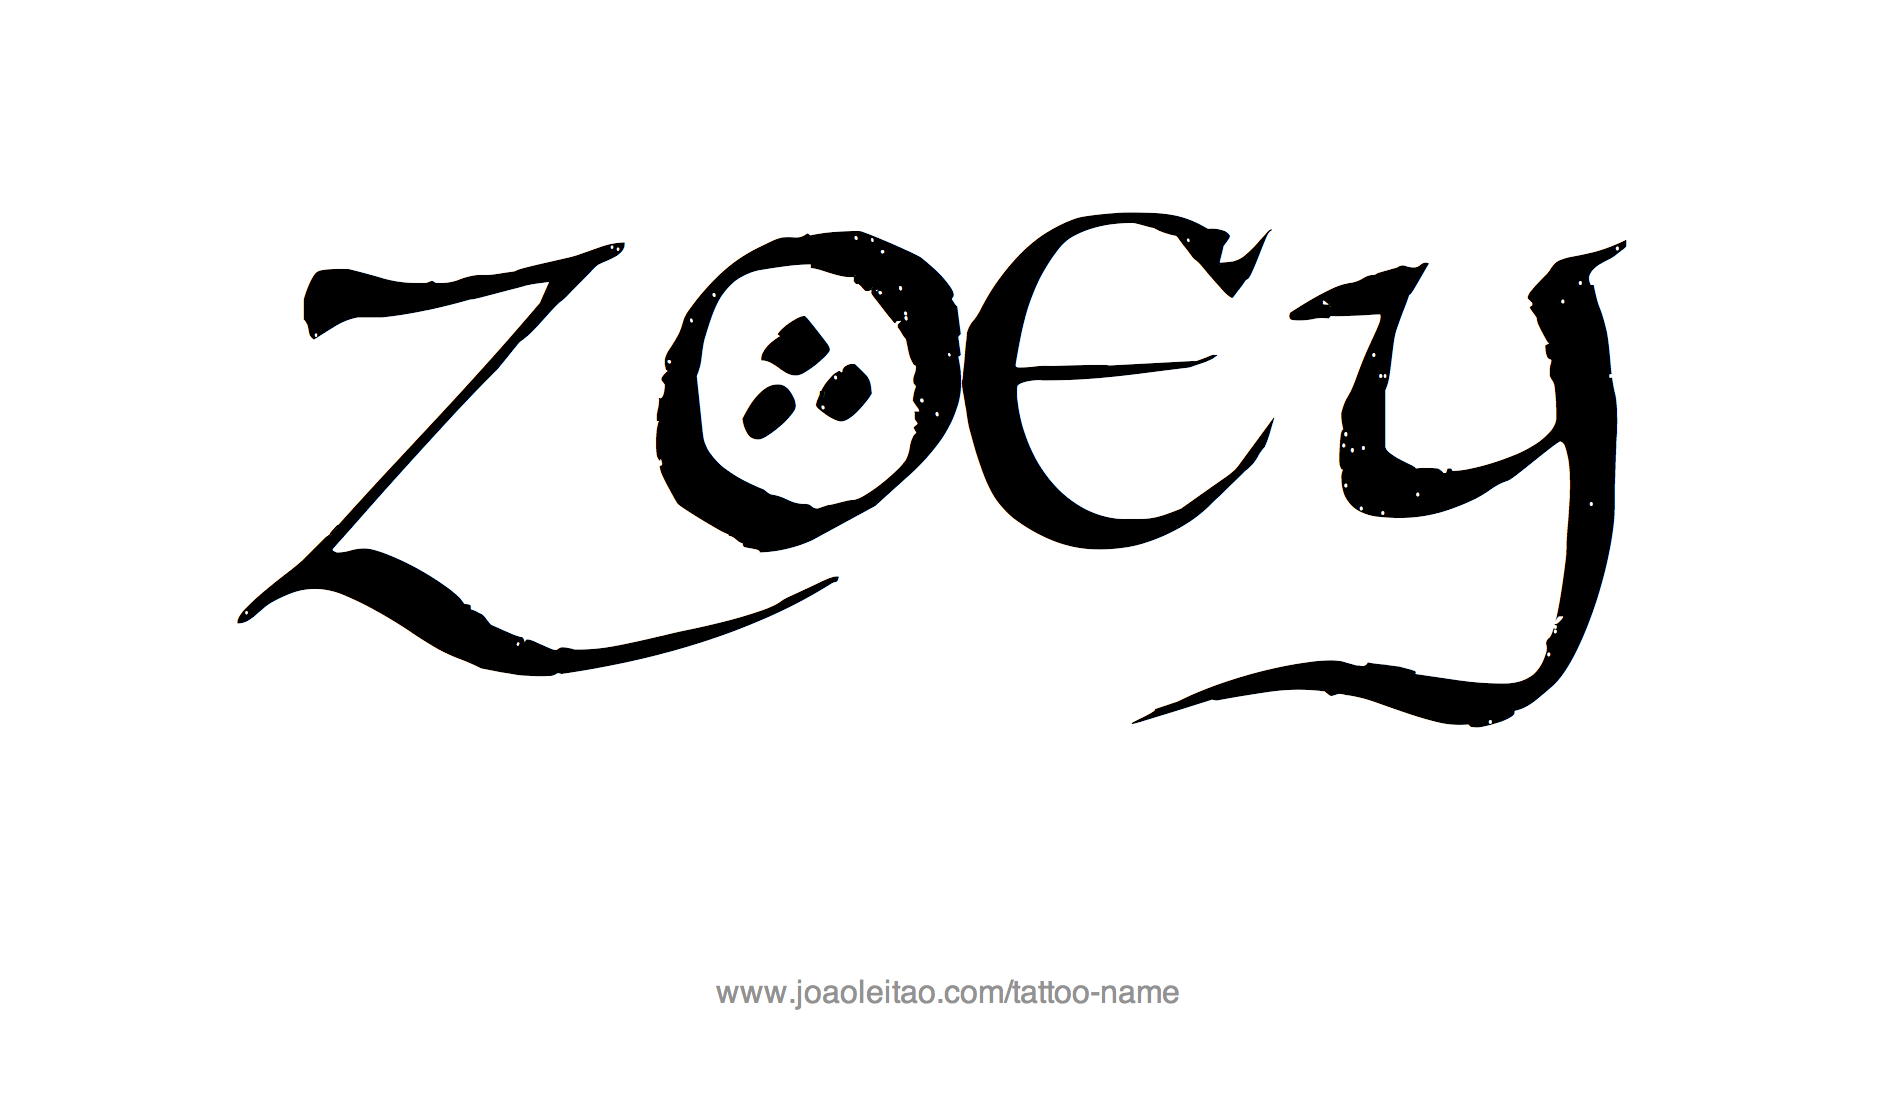 Tattoo Design Name Zoey